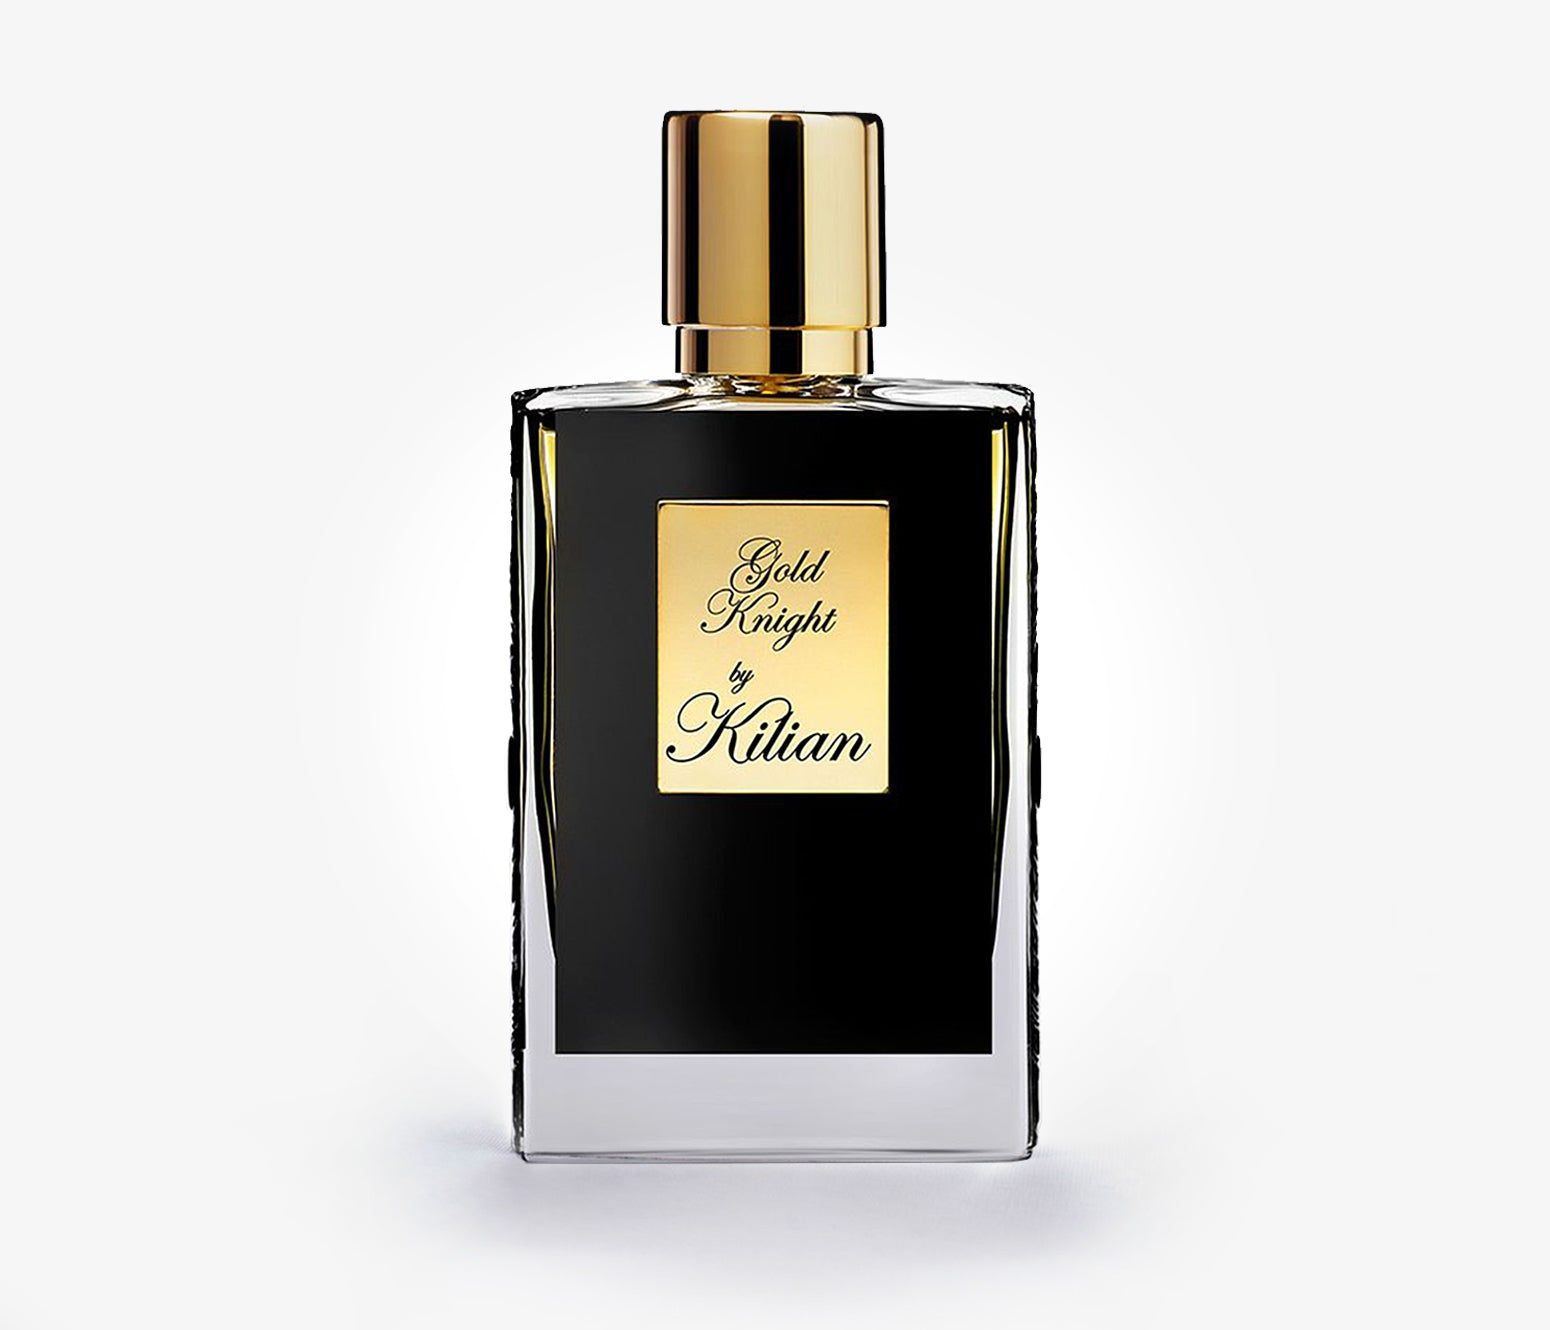 Kilian Paris - Gold Knight - 50ml - GVC7625 - product image - Fragrance - Les Senteurs